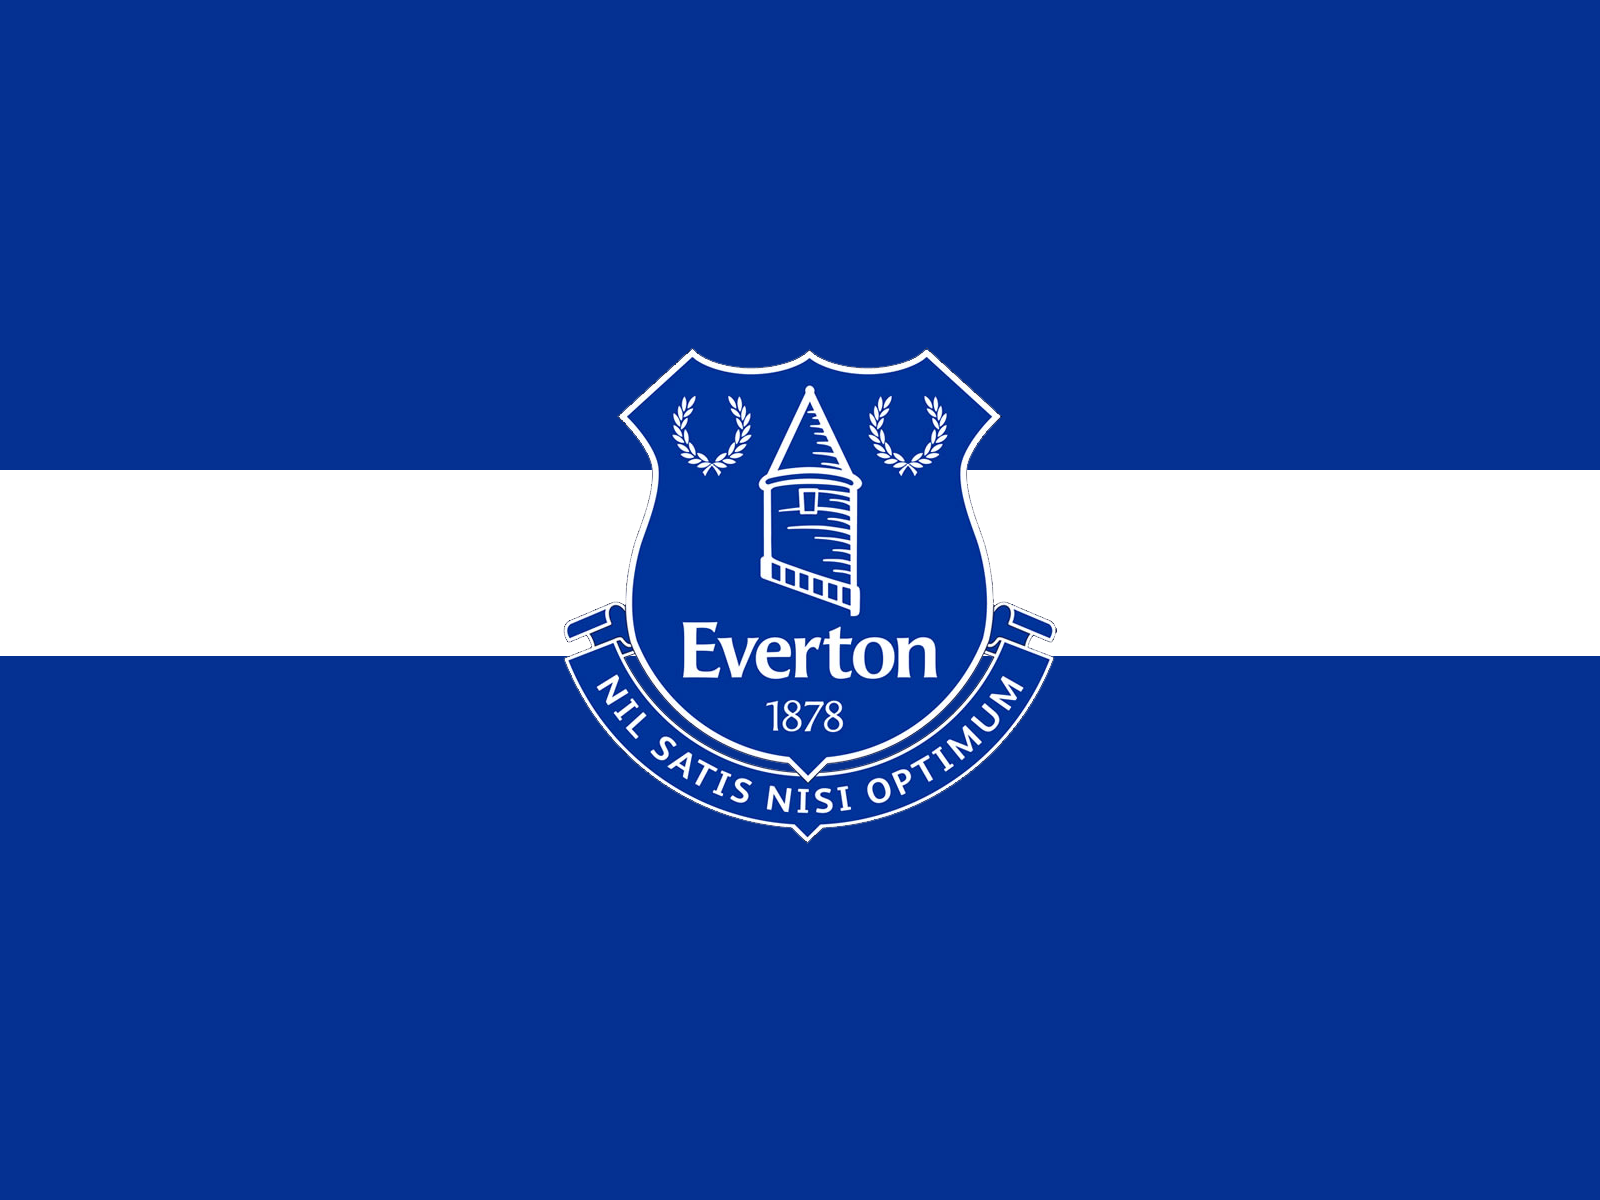 21 Everton F C Wallpapers On Wallpapersafari